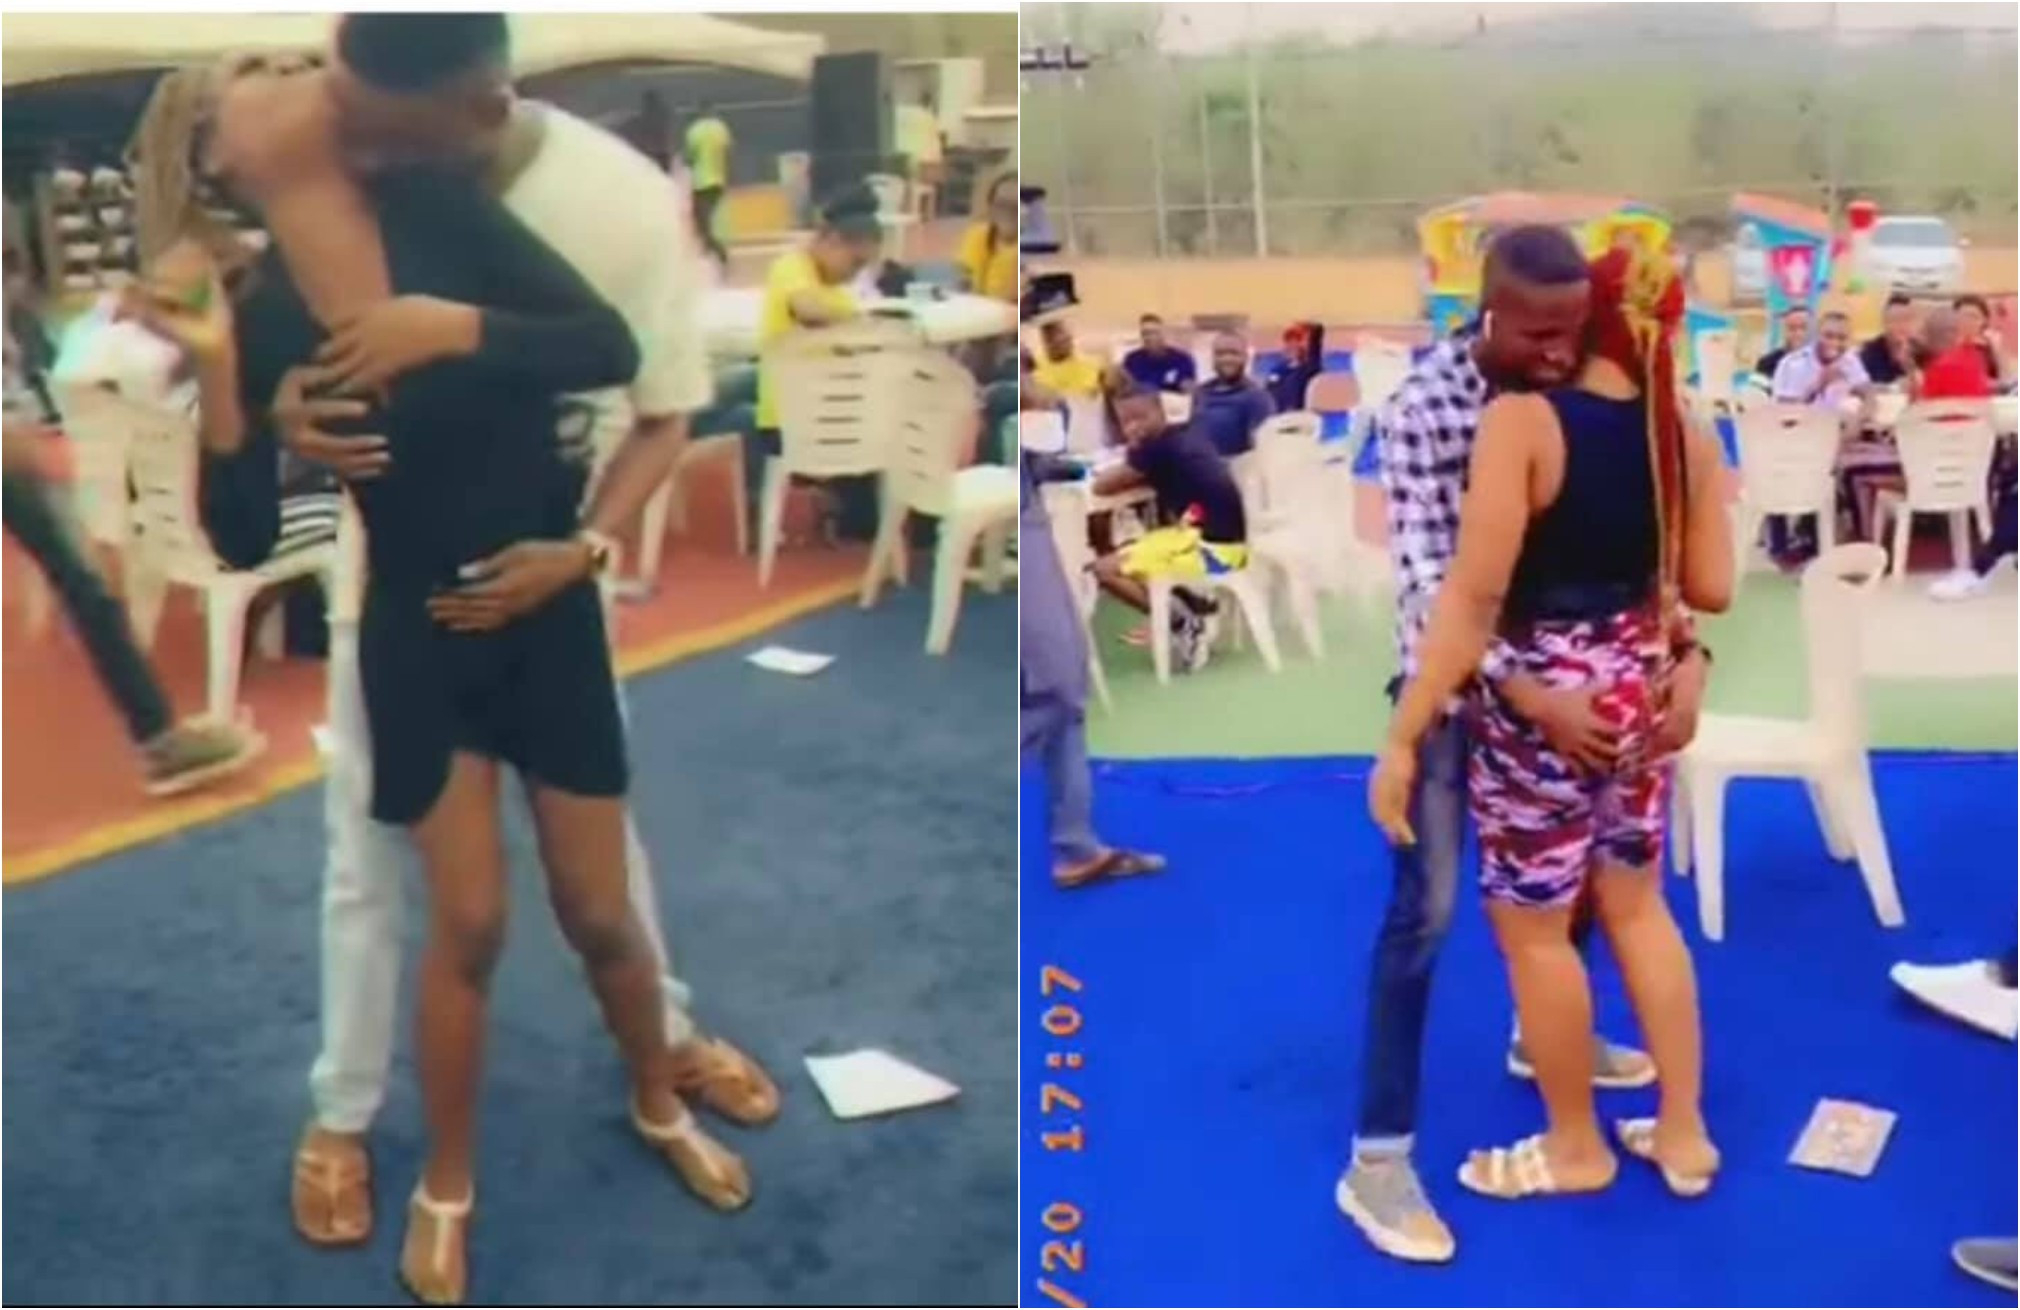 Sexually explicit videos from a Twitter hangout in Ogun state sparks controversy